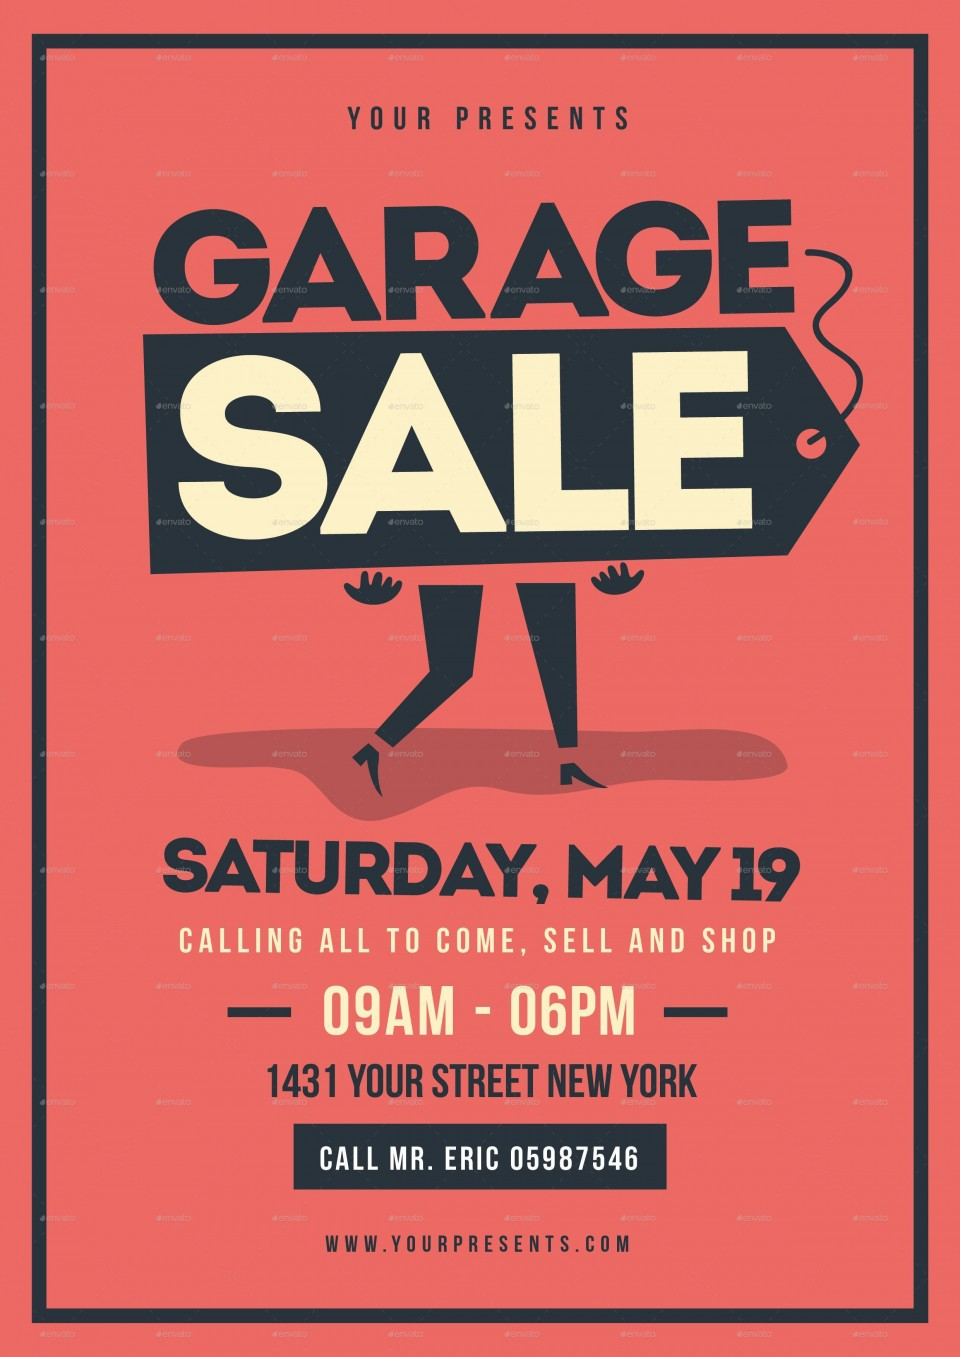 003 Stupendou Garage Sale Sign Template Image  Flyer Microsoft Word Community Yard Free Rummage960